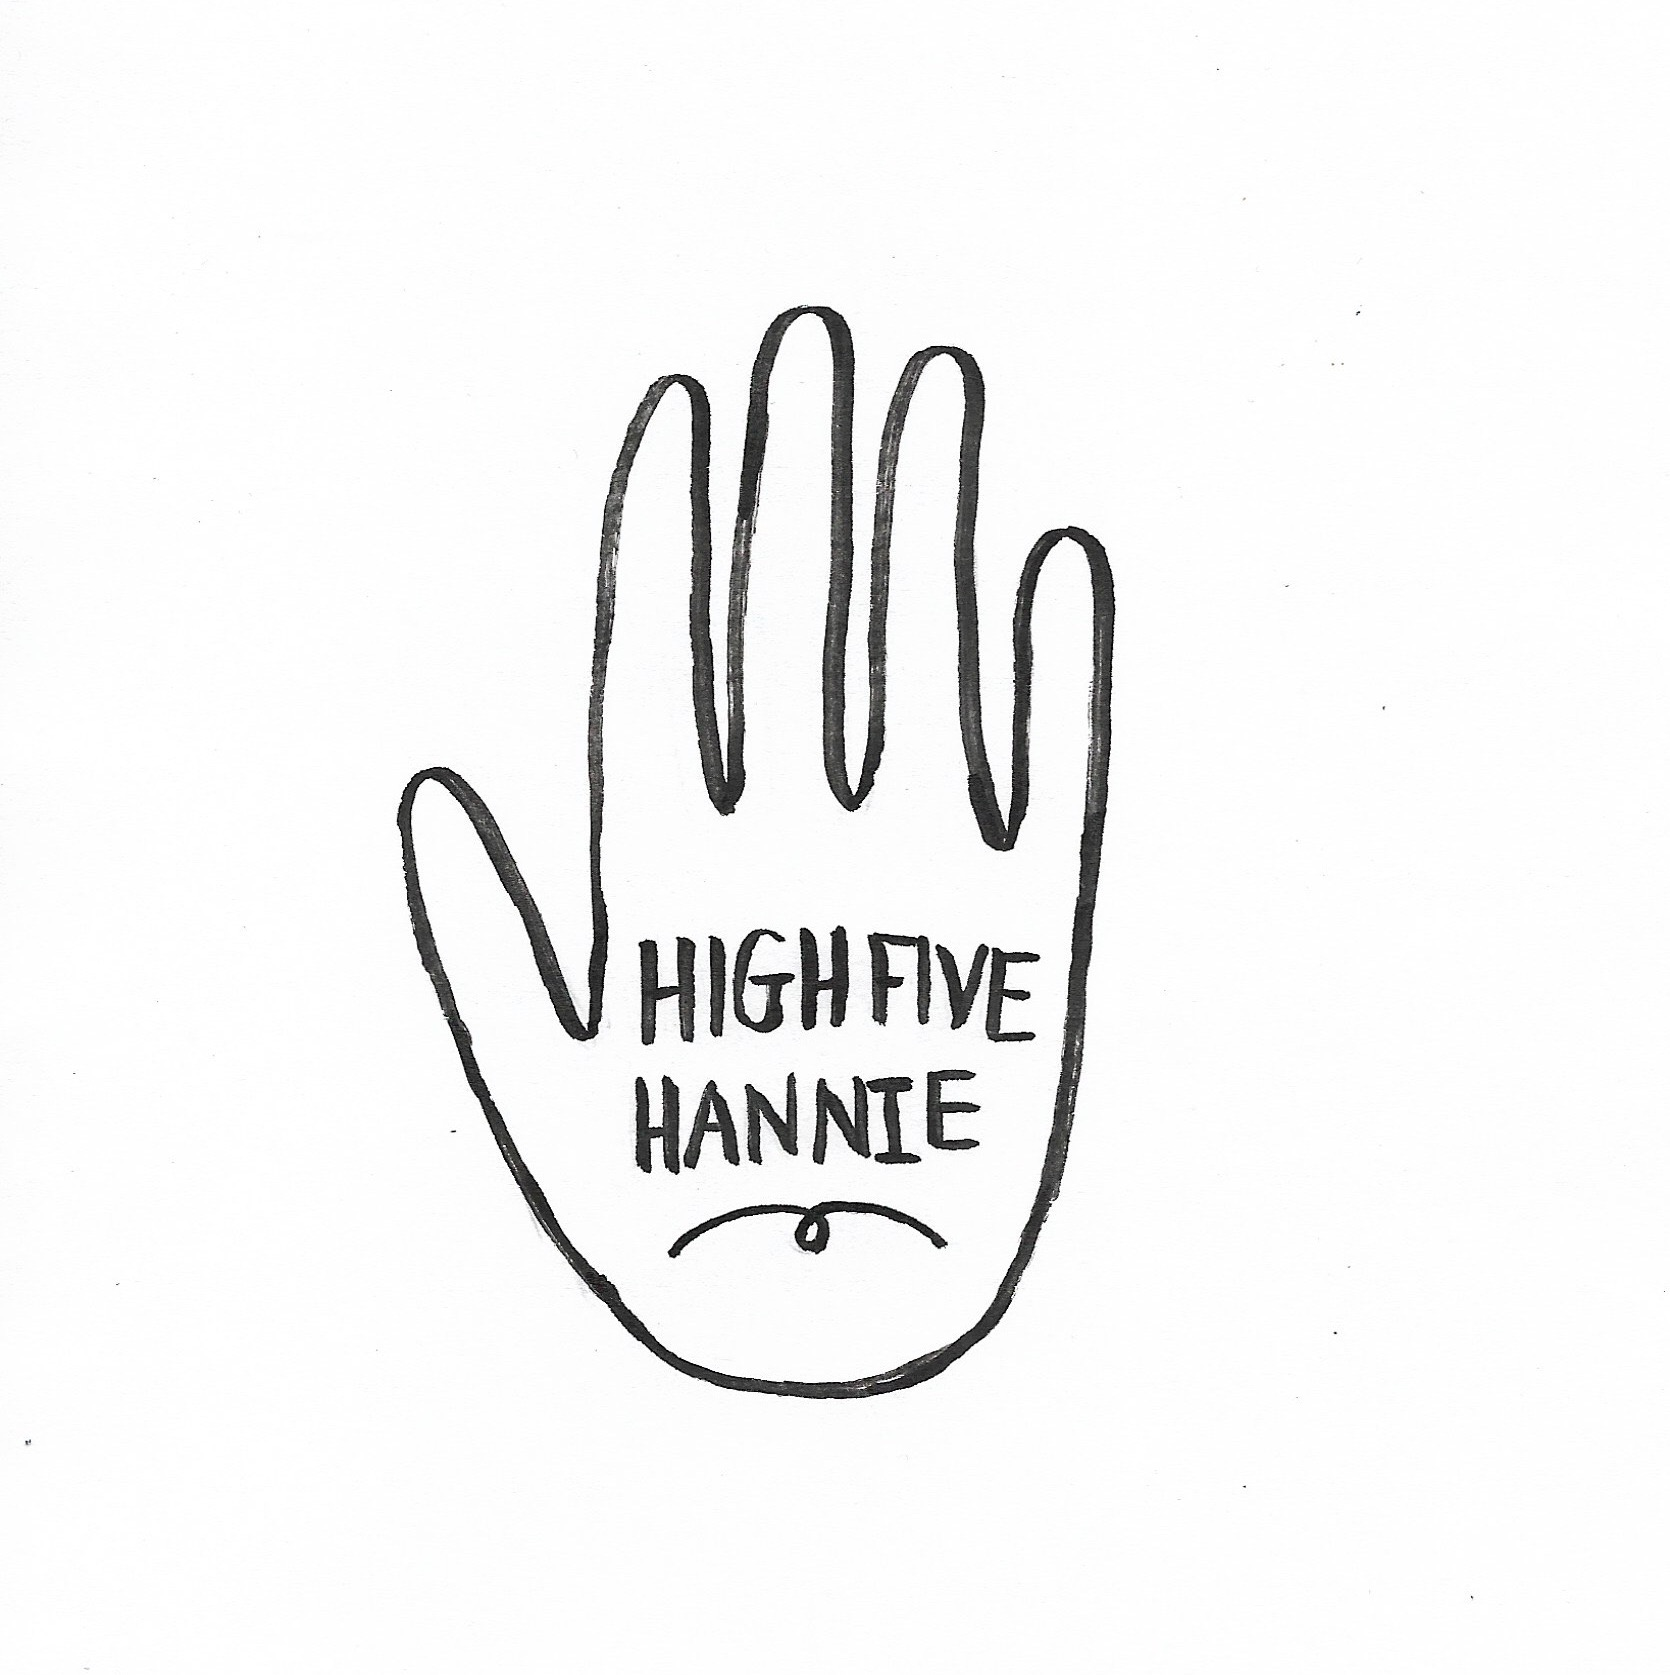 high five hannie logo.jpeg